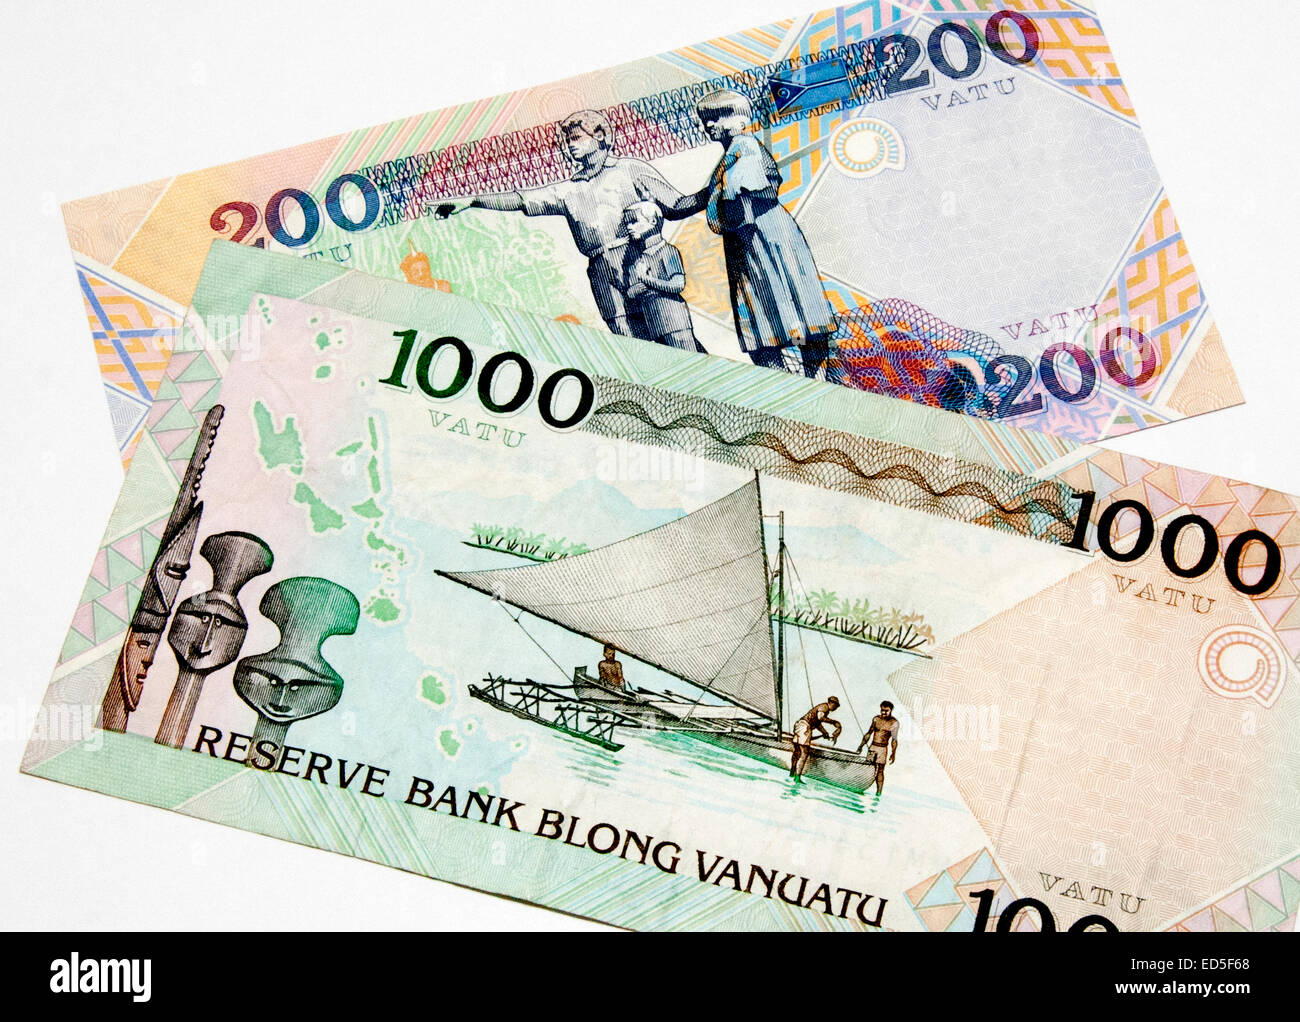 Vanuatu Bank Notes - Stock Image